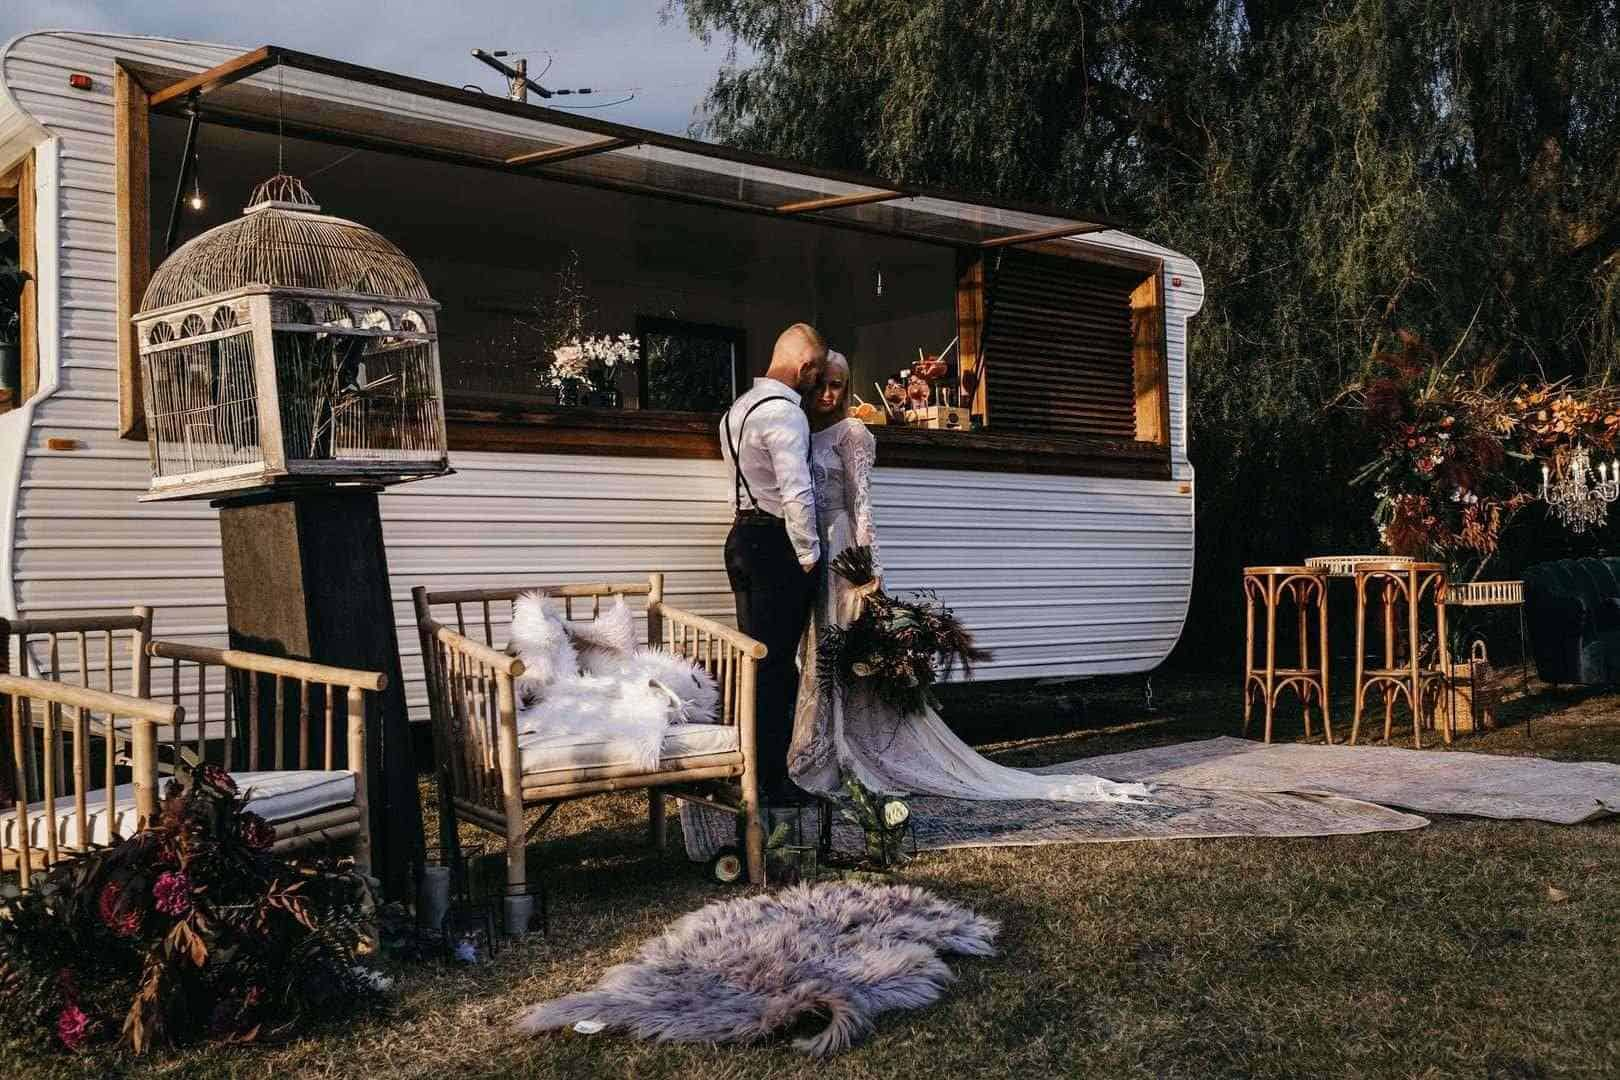 Bride and groom in front of a caravan